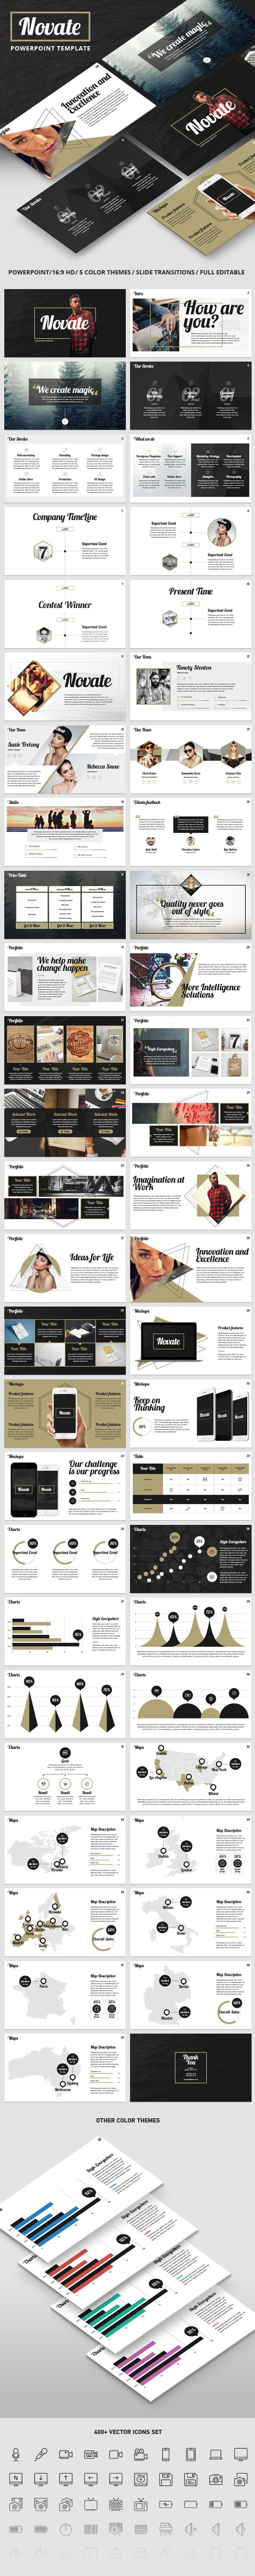 NOVATE - Creative PowerPoint Presentation Template. Download here: http://graphicriver.net/item/novate-creative-powerpoint-presentation-template/16040888?ref=ksioks